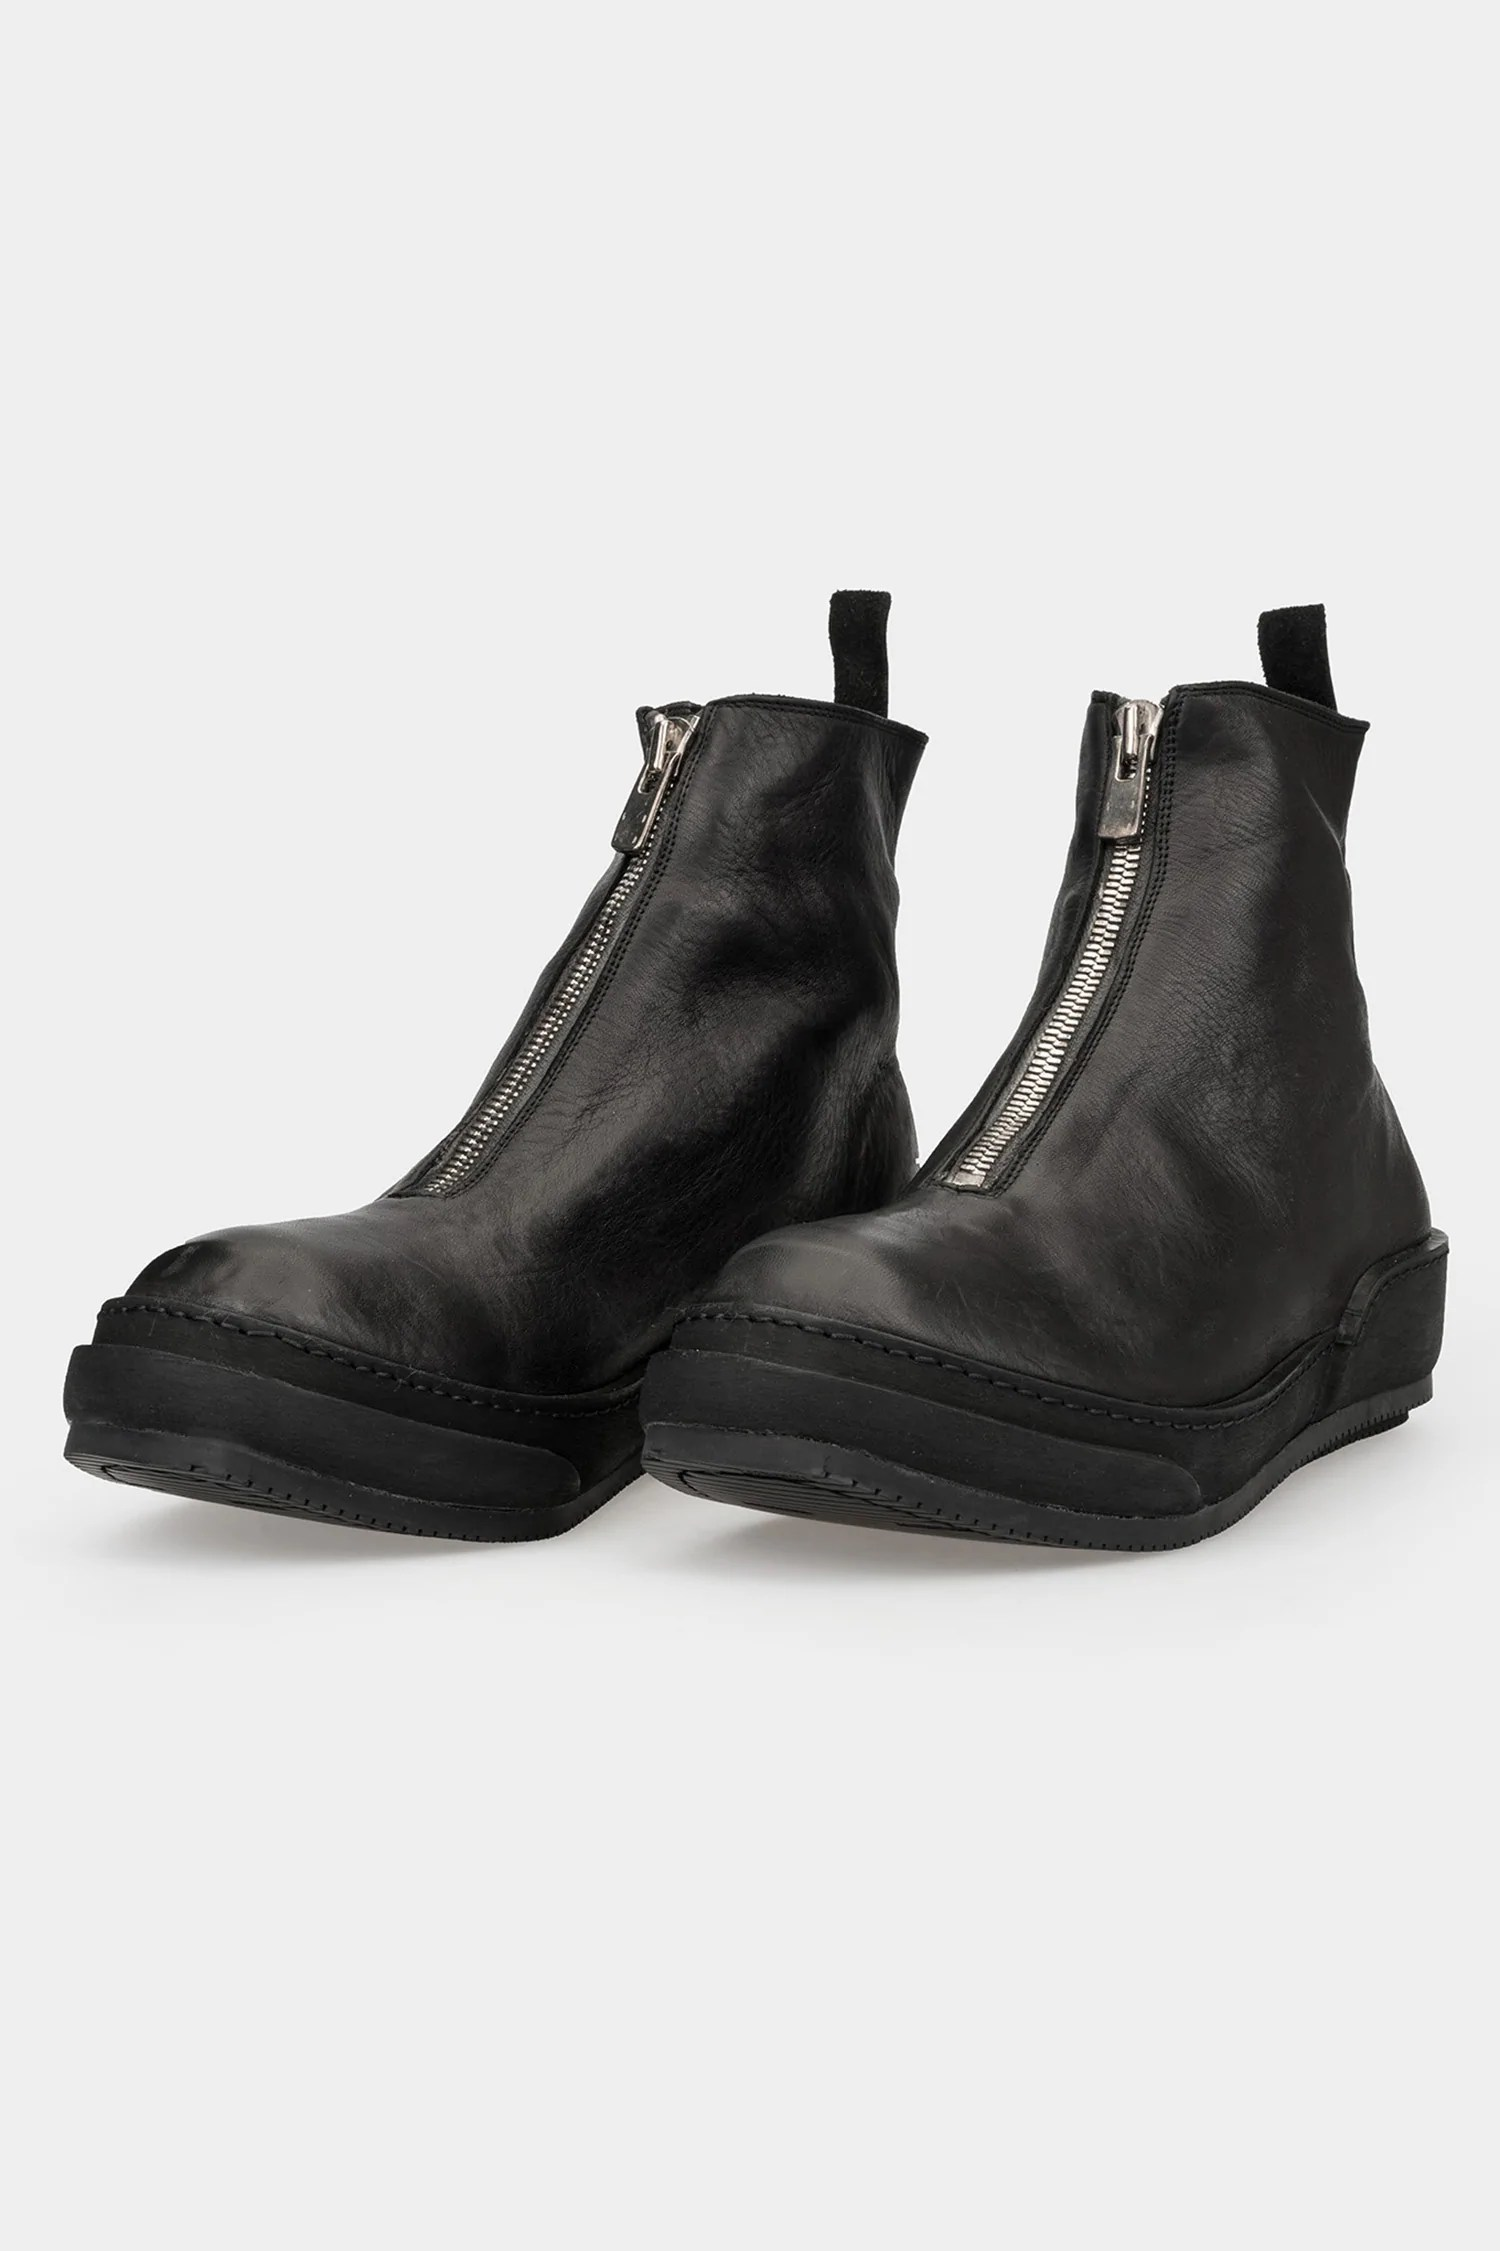 Guidi Aw20 Front Zip Leather Sneakers Pls Orimono Eu